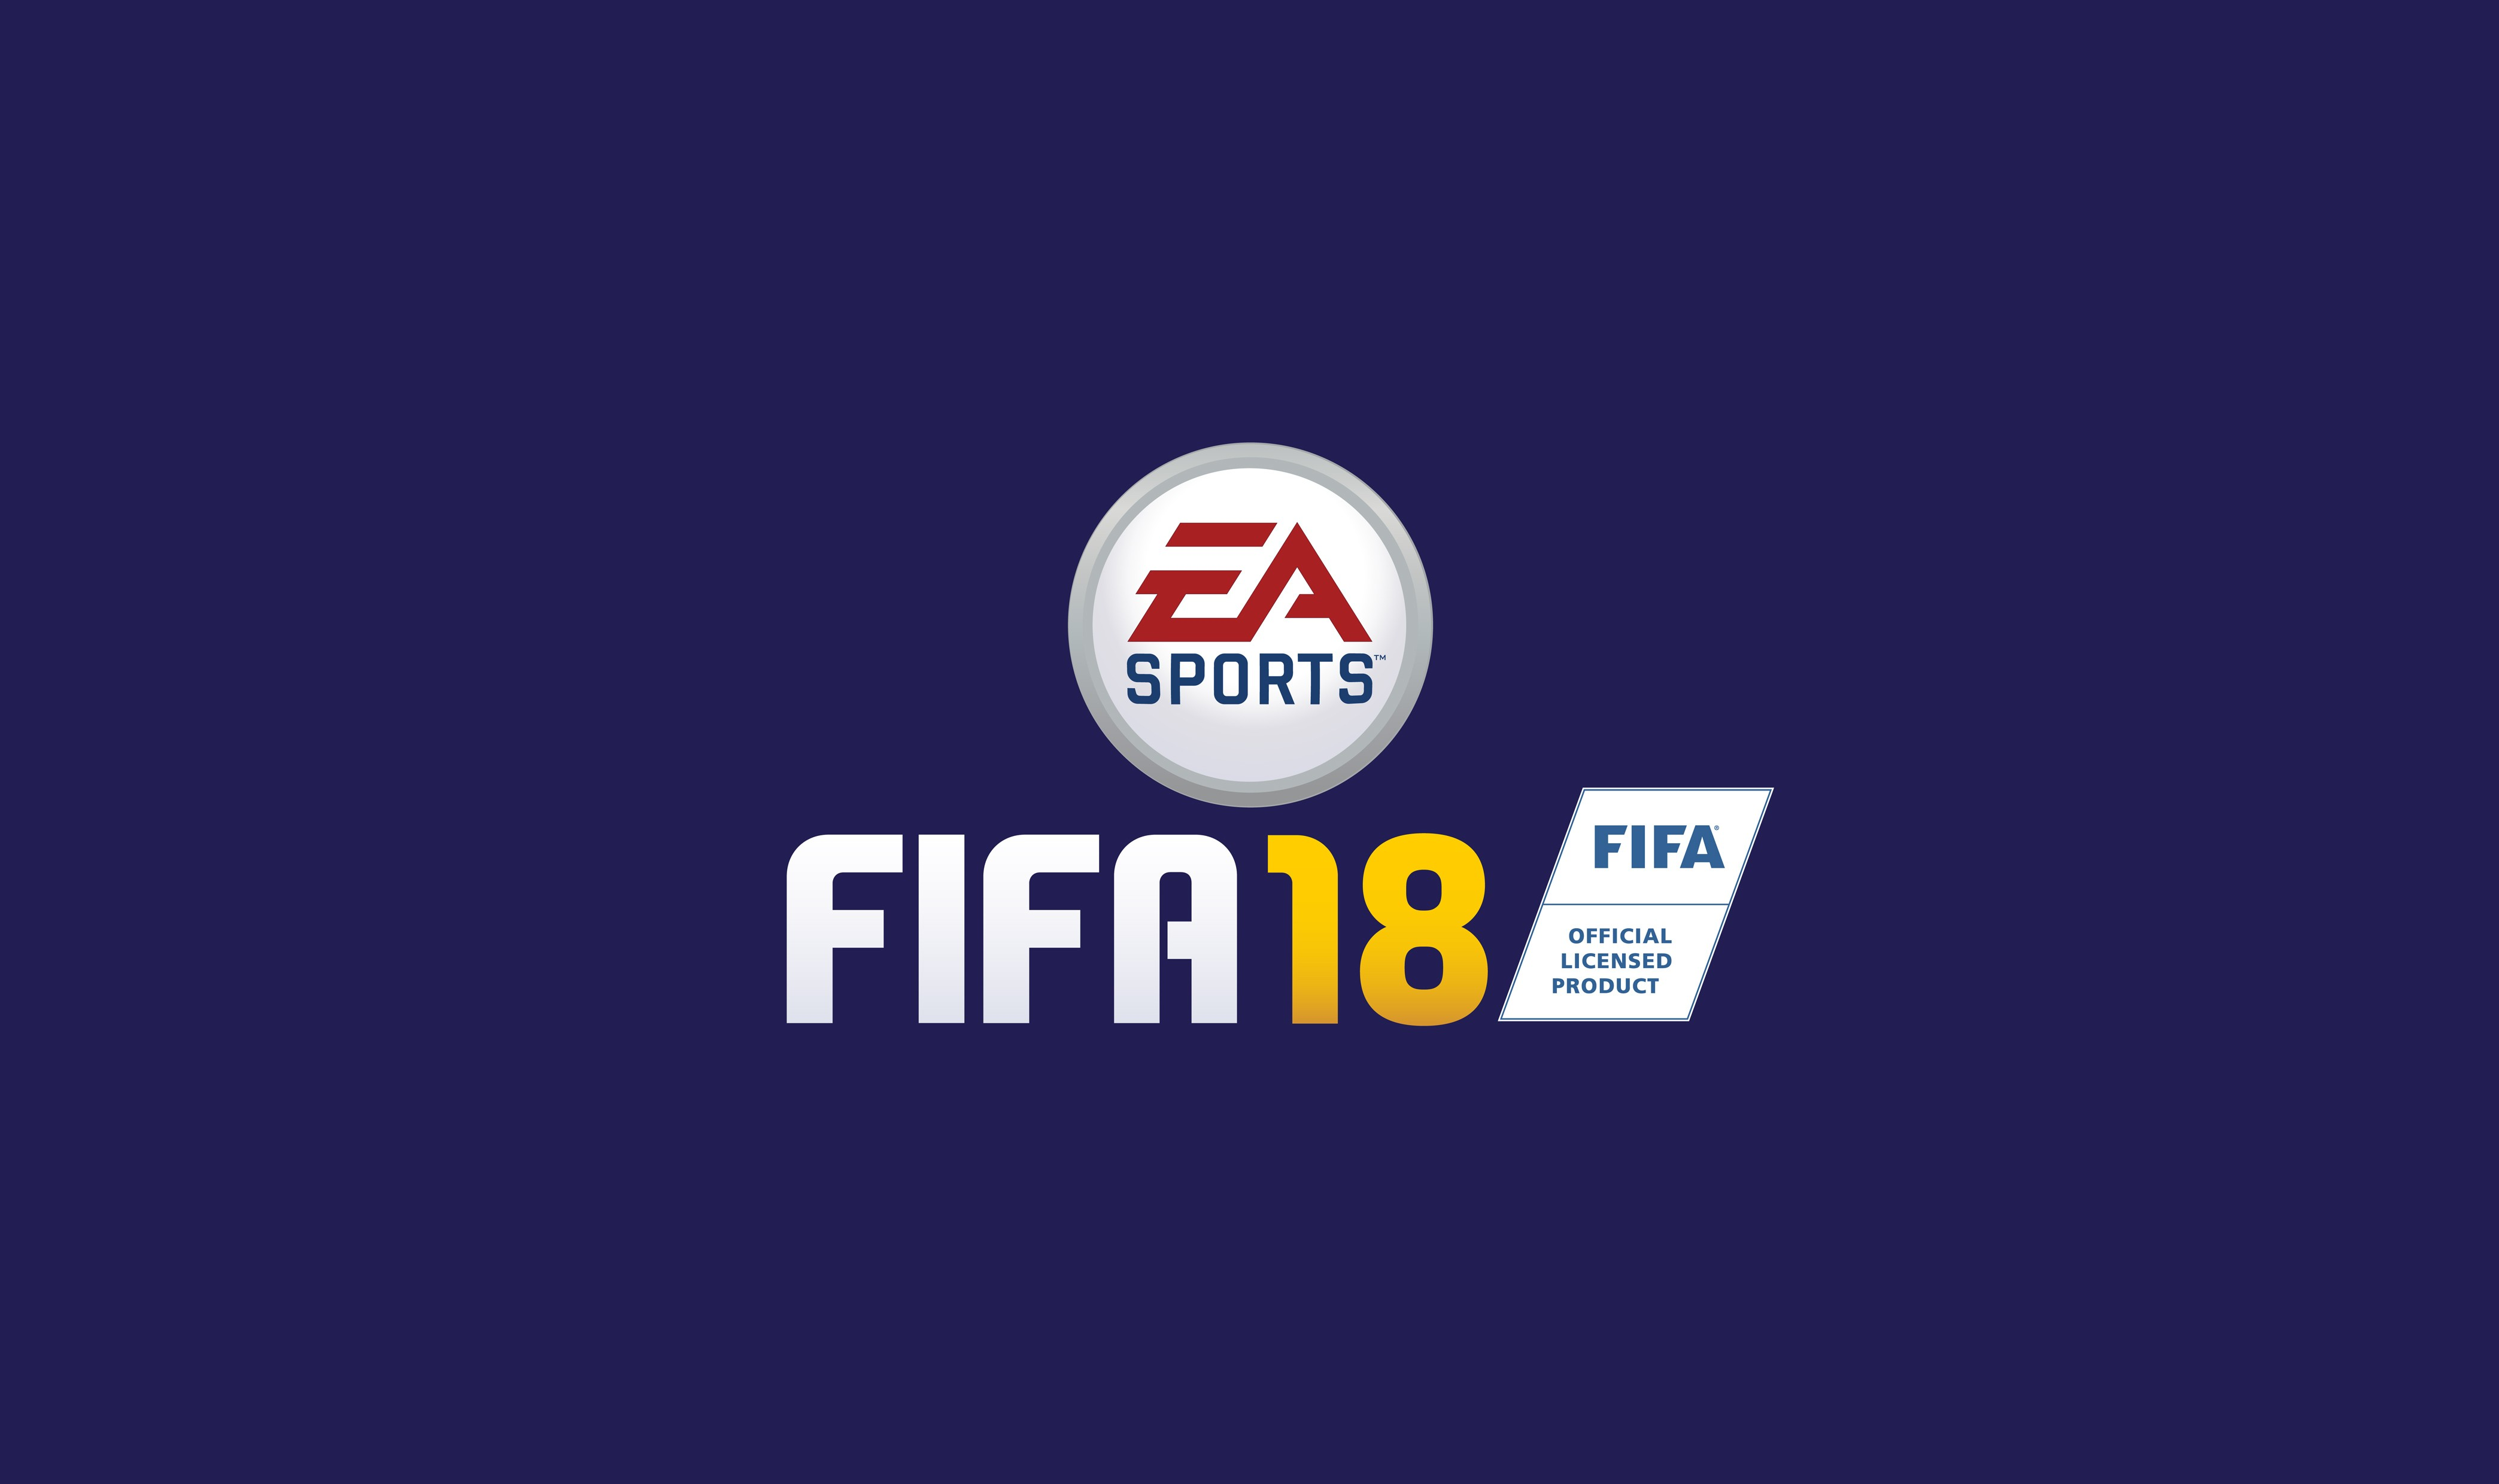 wallpaper fifa 18 5k poster e3 2017 games 13688